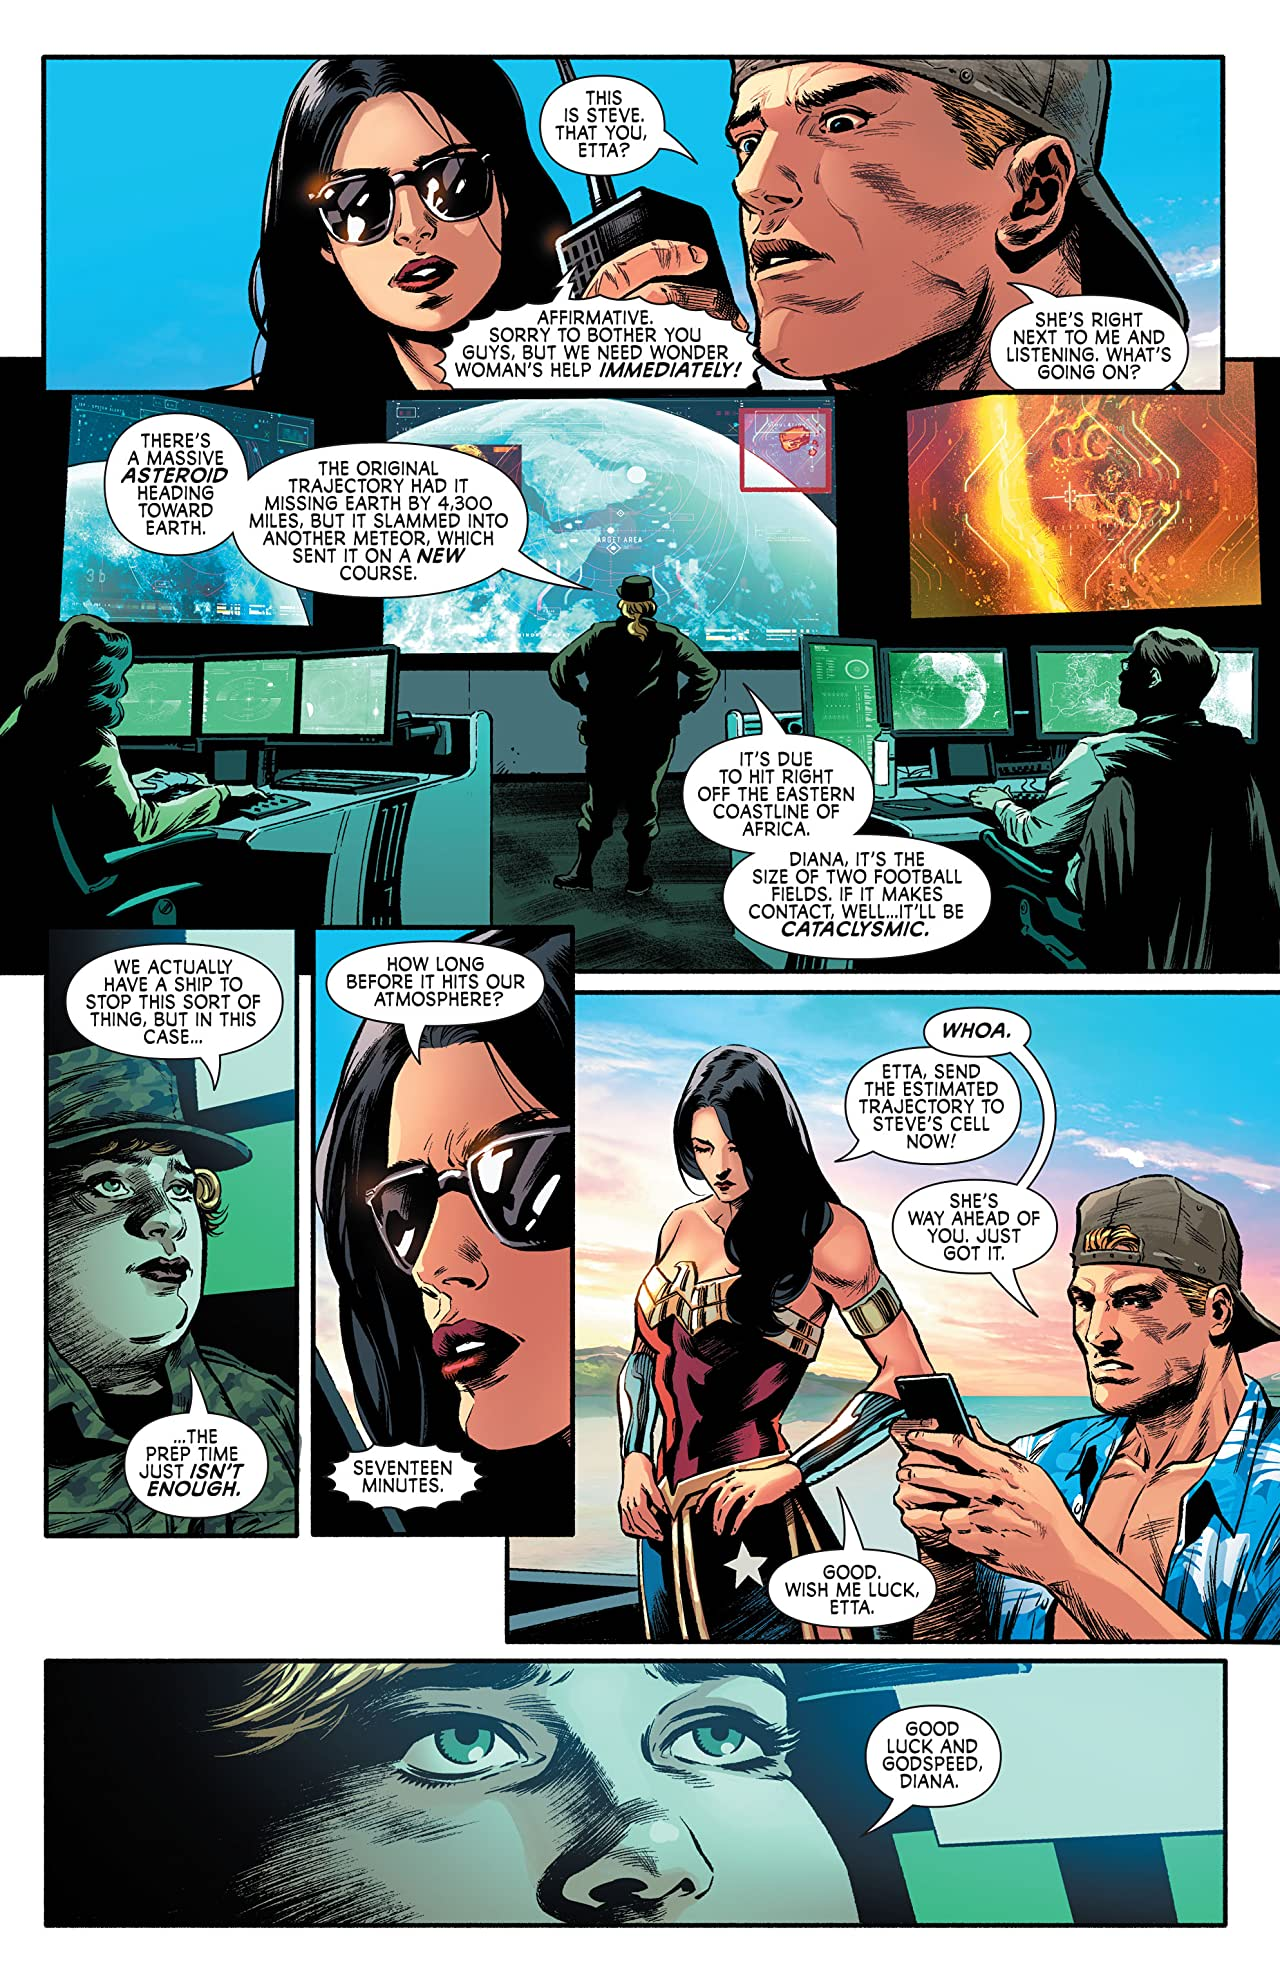 Wonder Woman: Agent of Peace #3